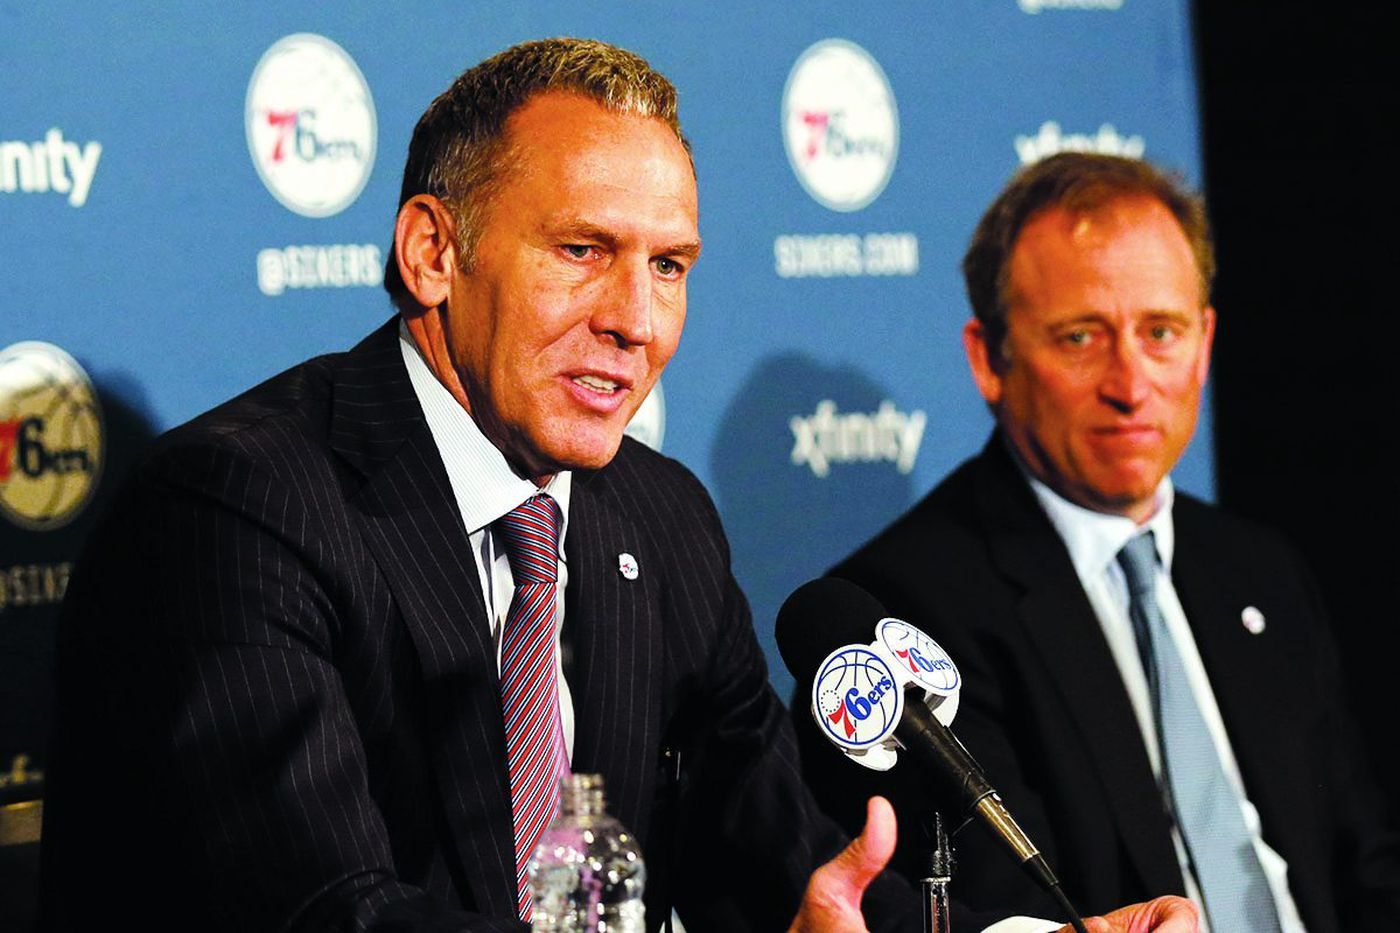 How did Bryan Colangelo and the Sixers get here? A timeline from the Process to the Twitter mess